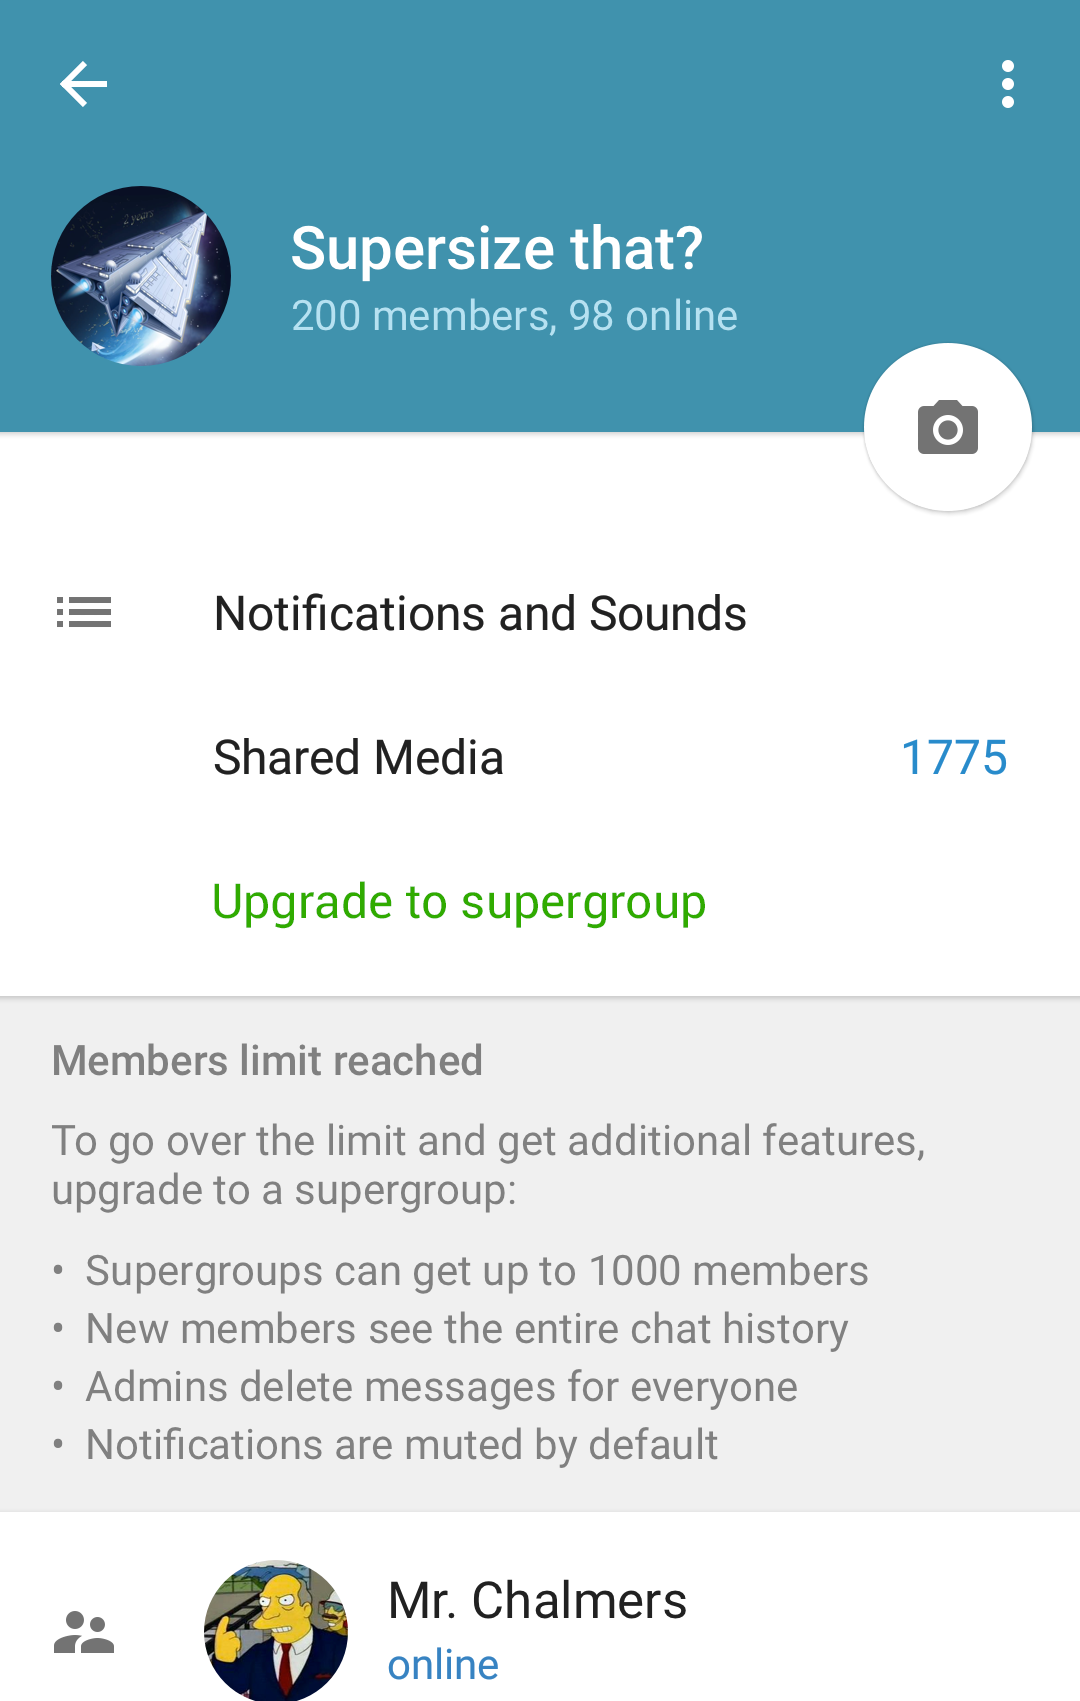 The best: how to add more than 200 in telegram channel